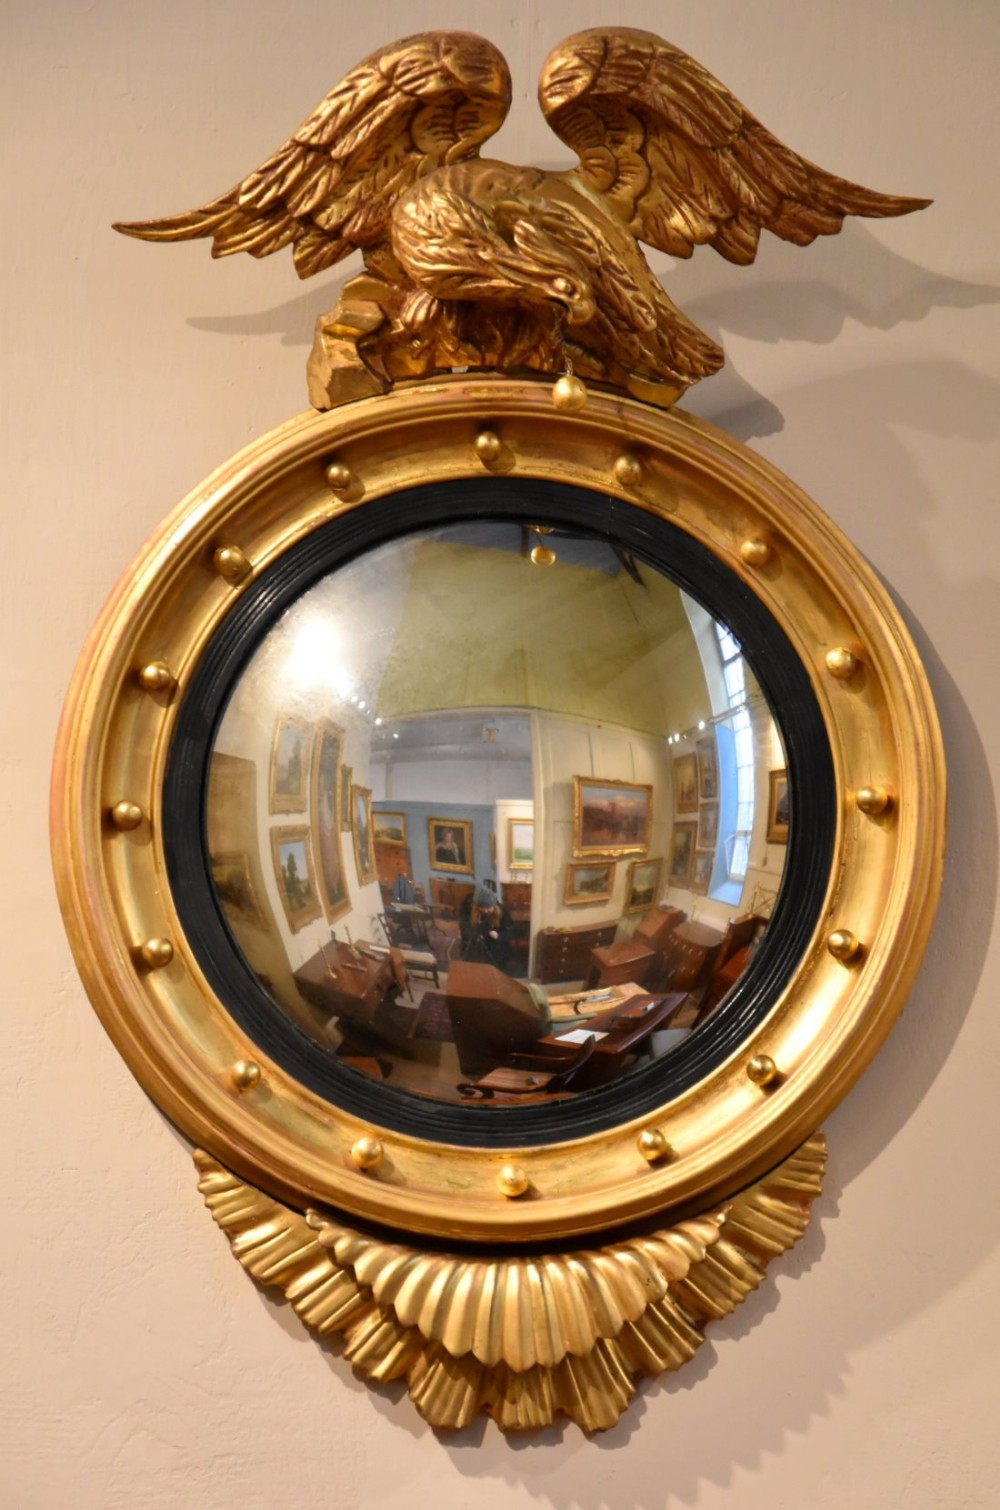 Eagle Crested Convex Mirror 455531 Sellingantiques Co Uk